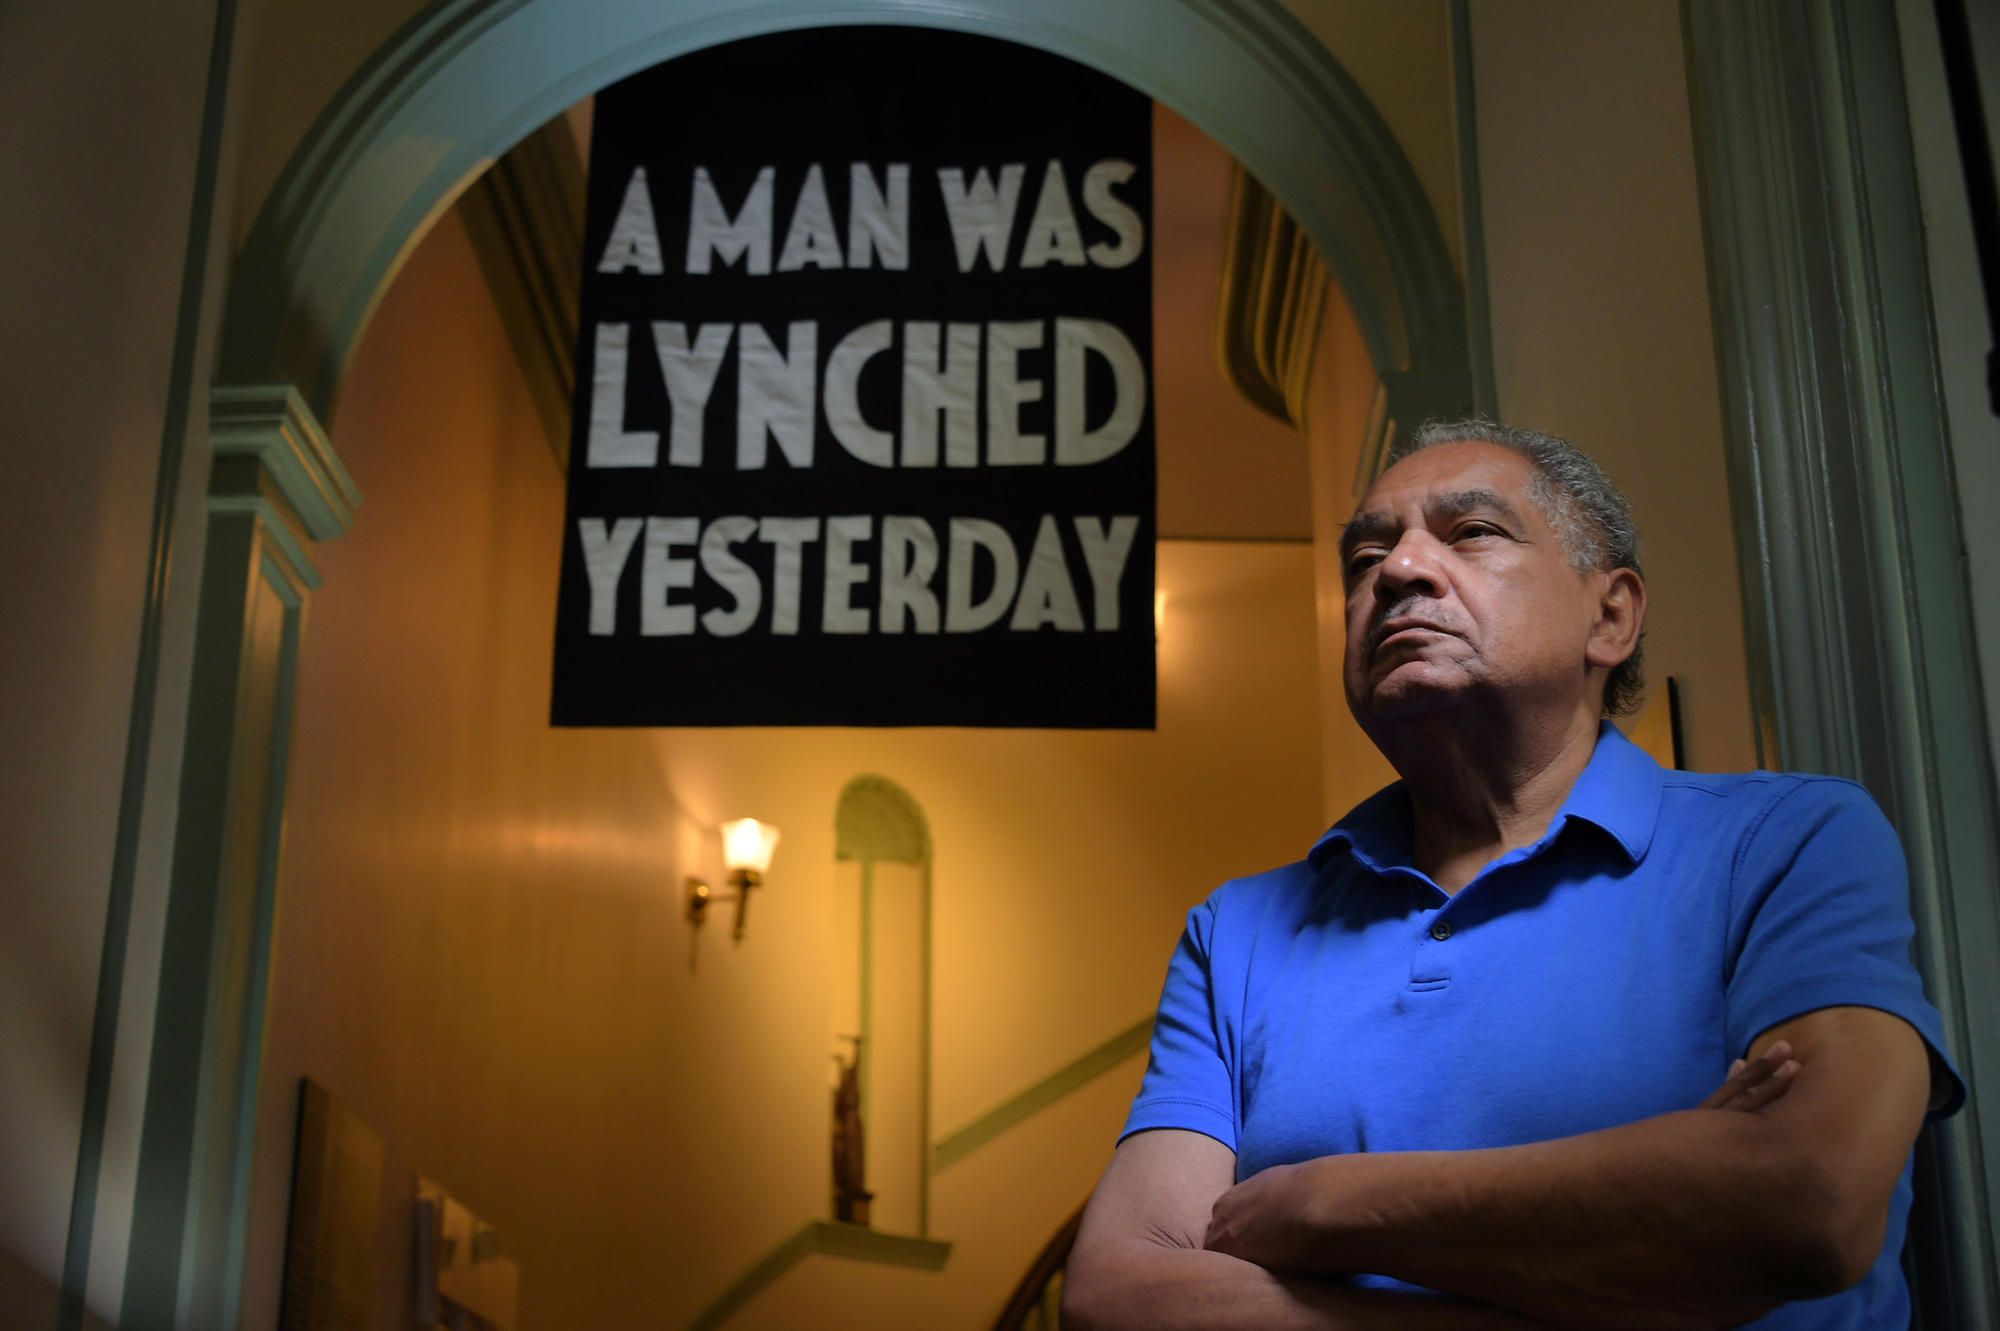 Lynchings in Maryland